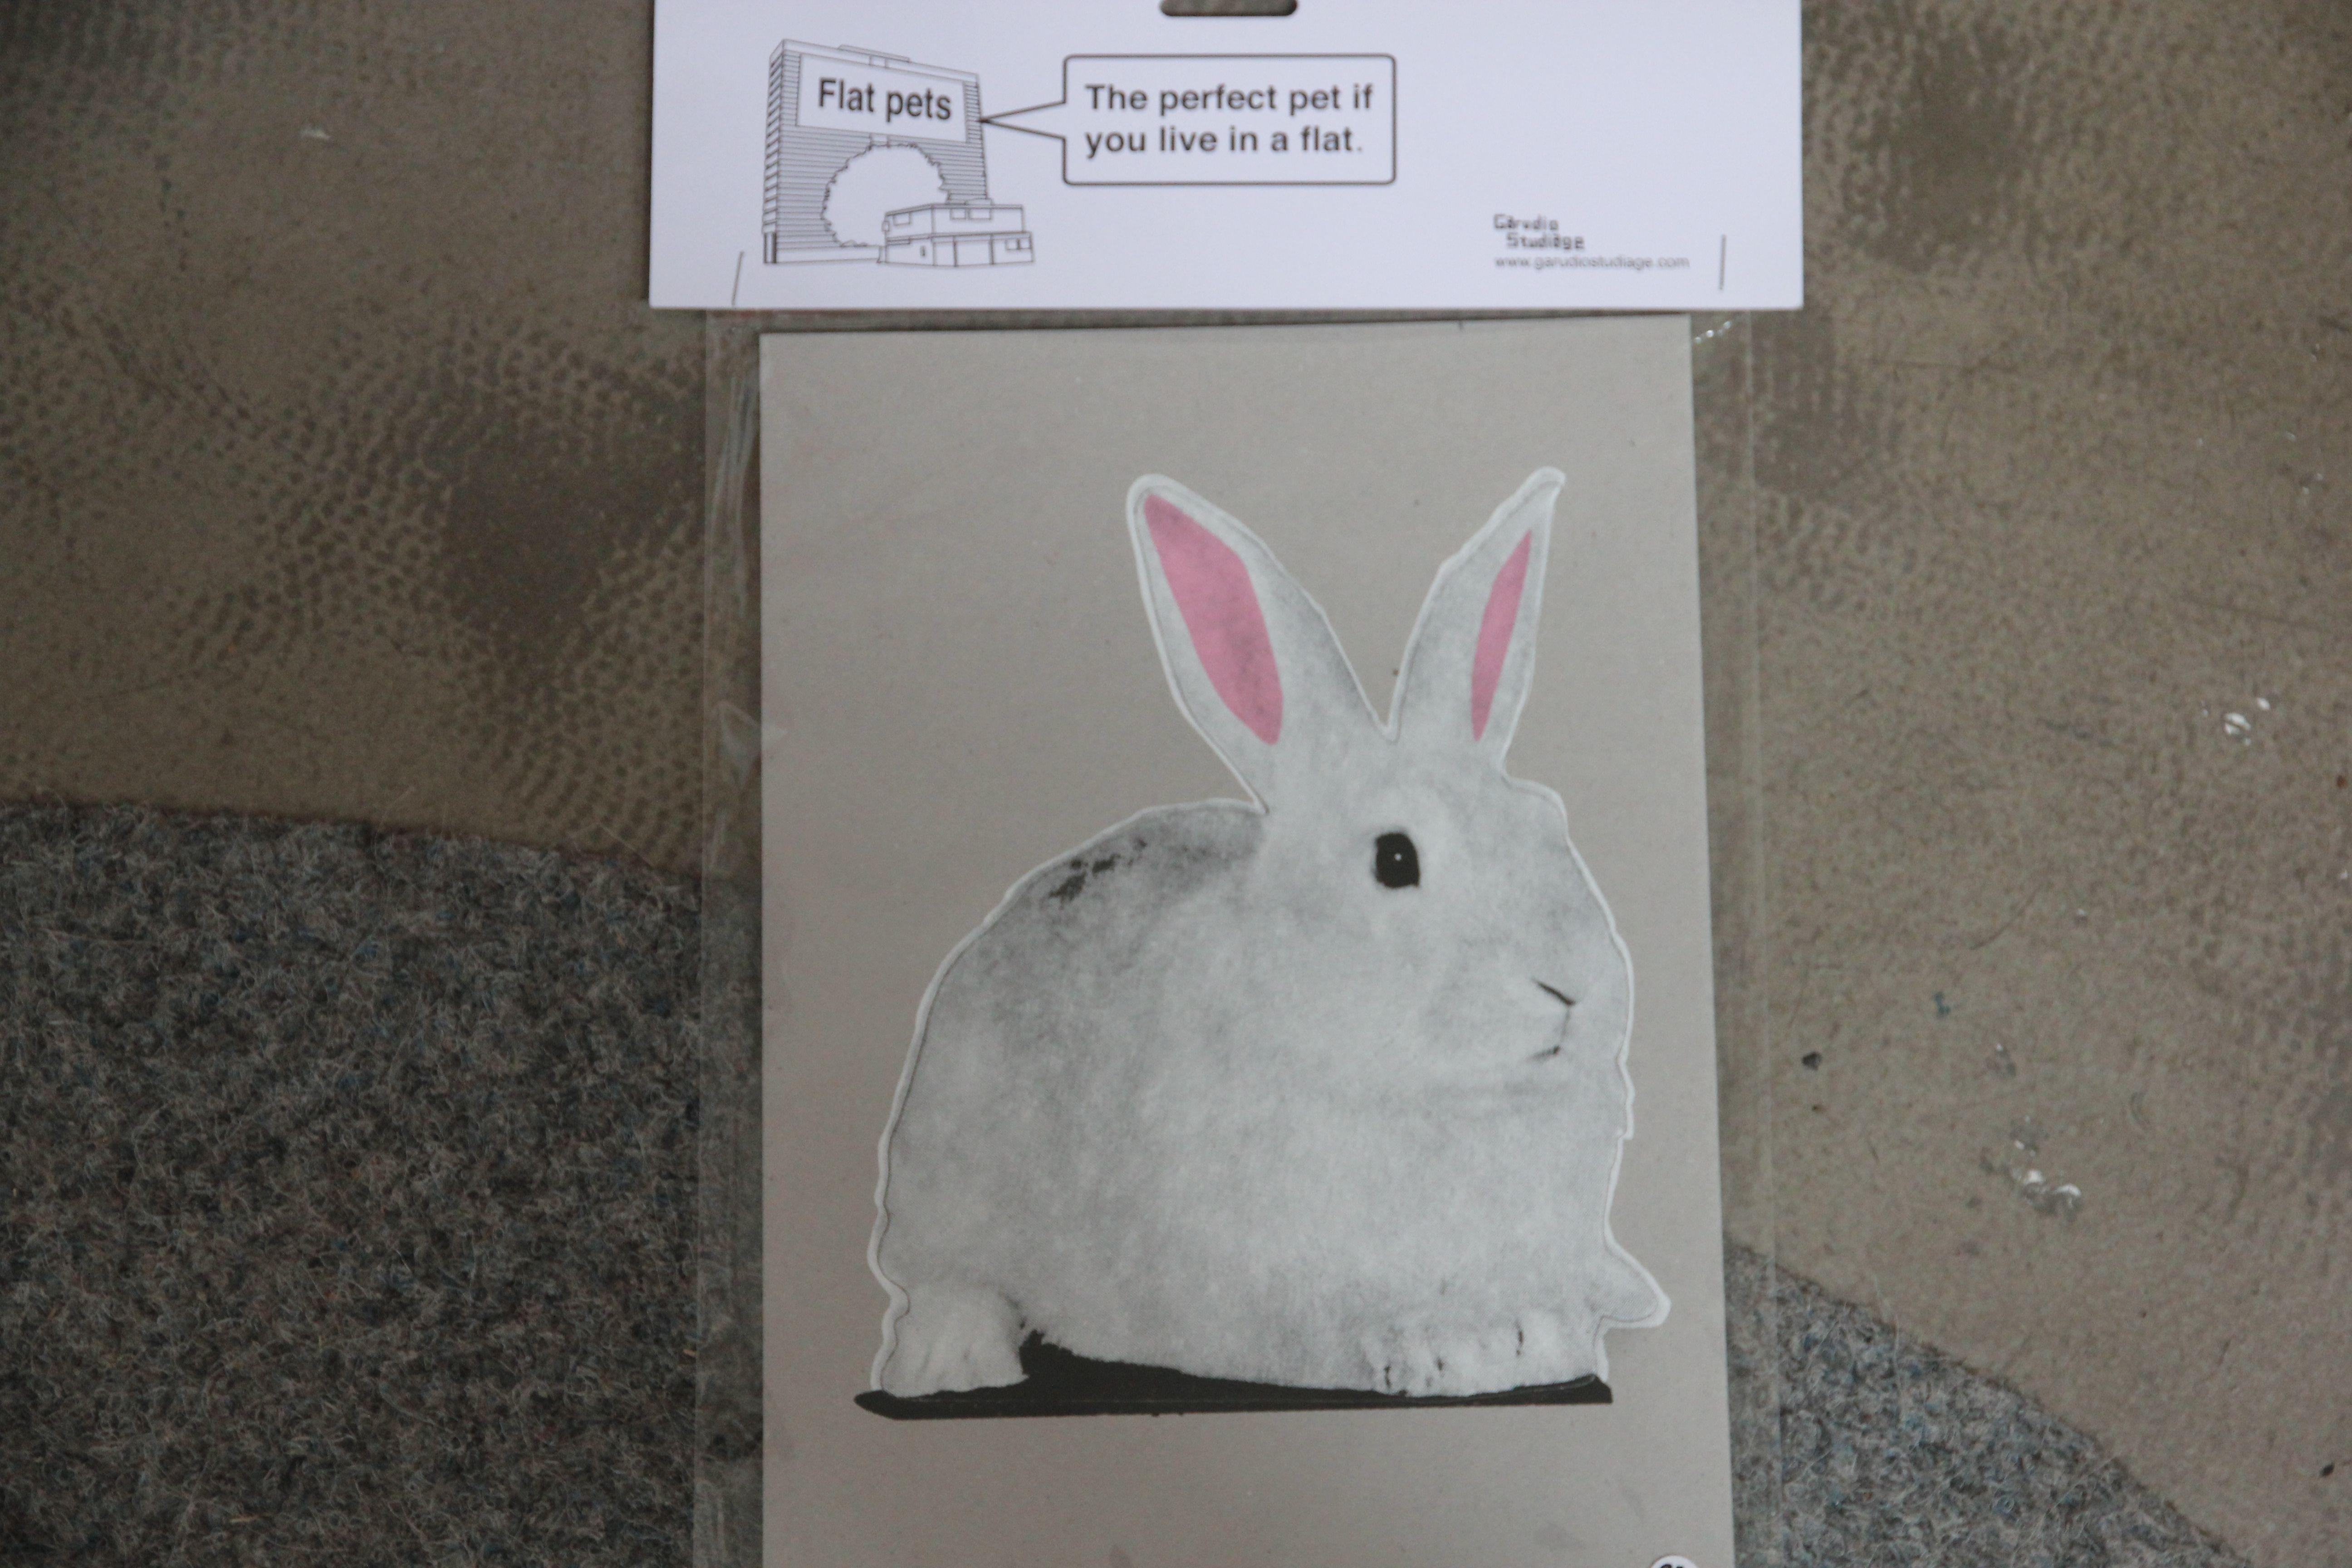 flat pet rabbit / marre des épinards